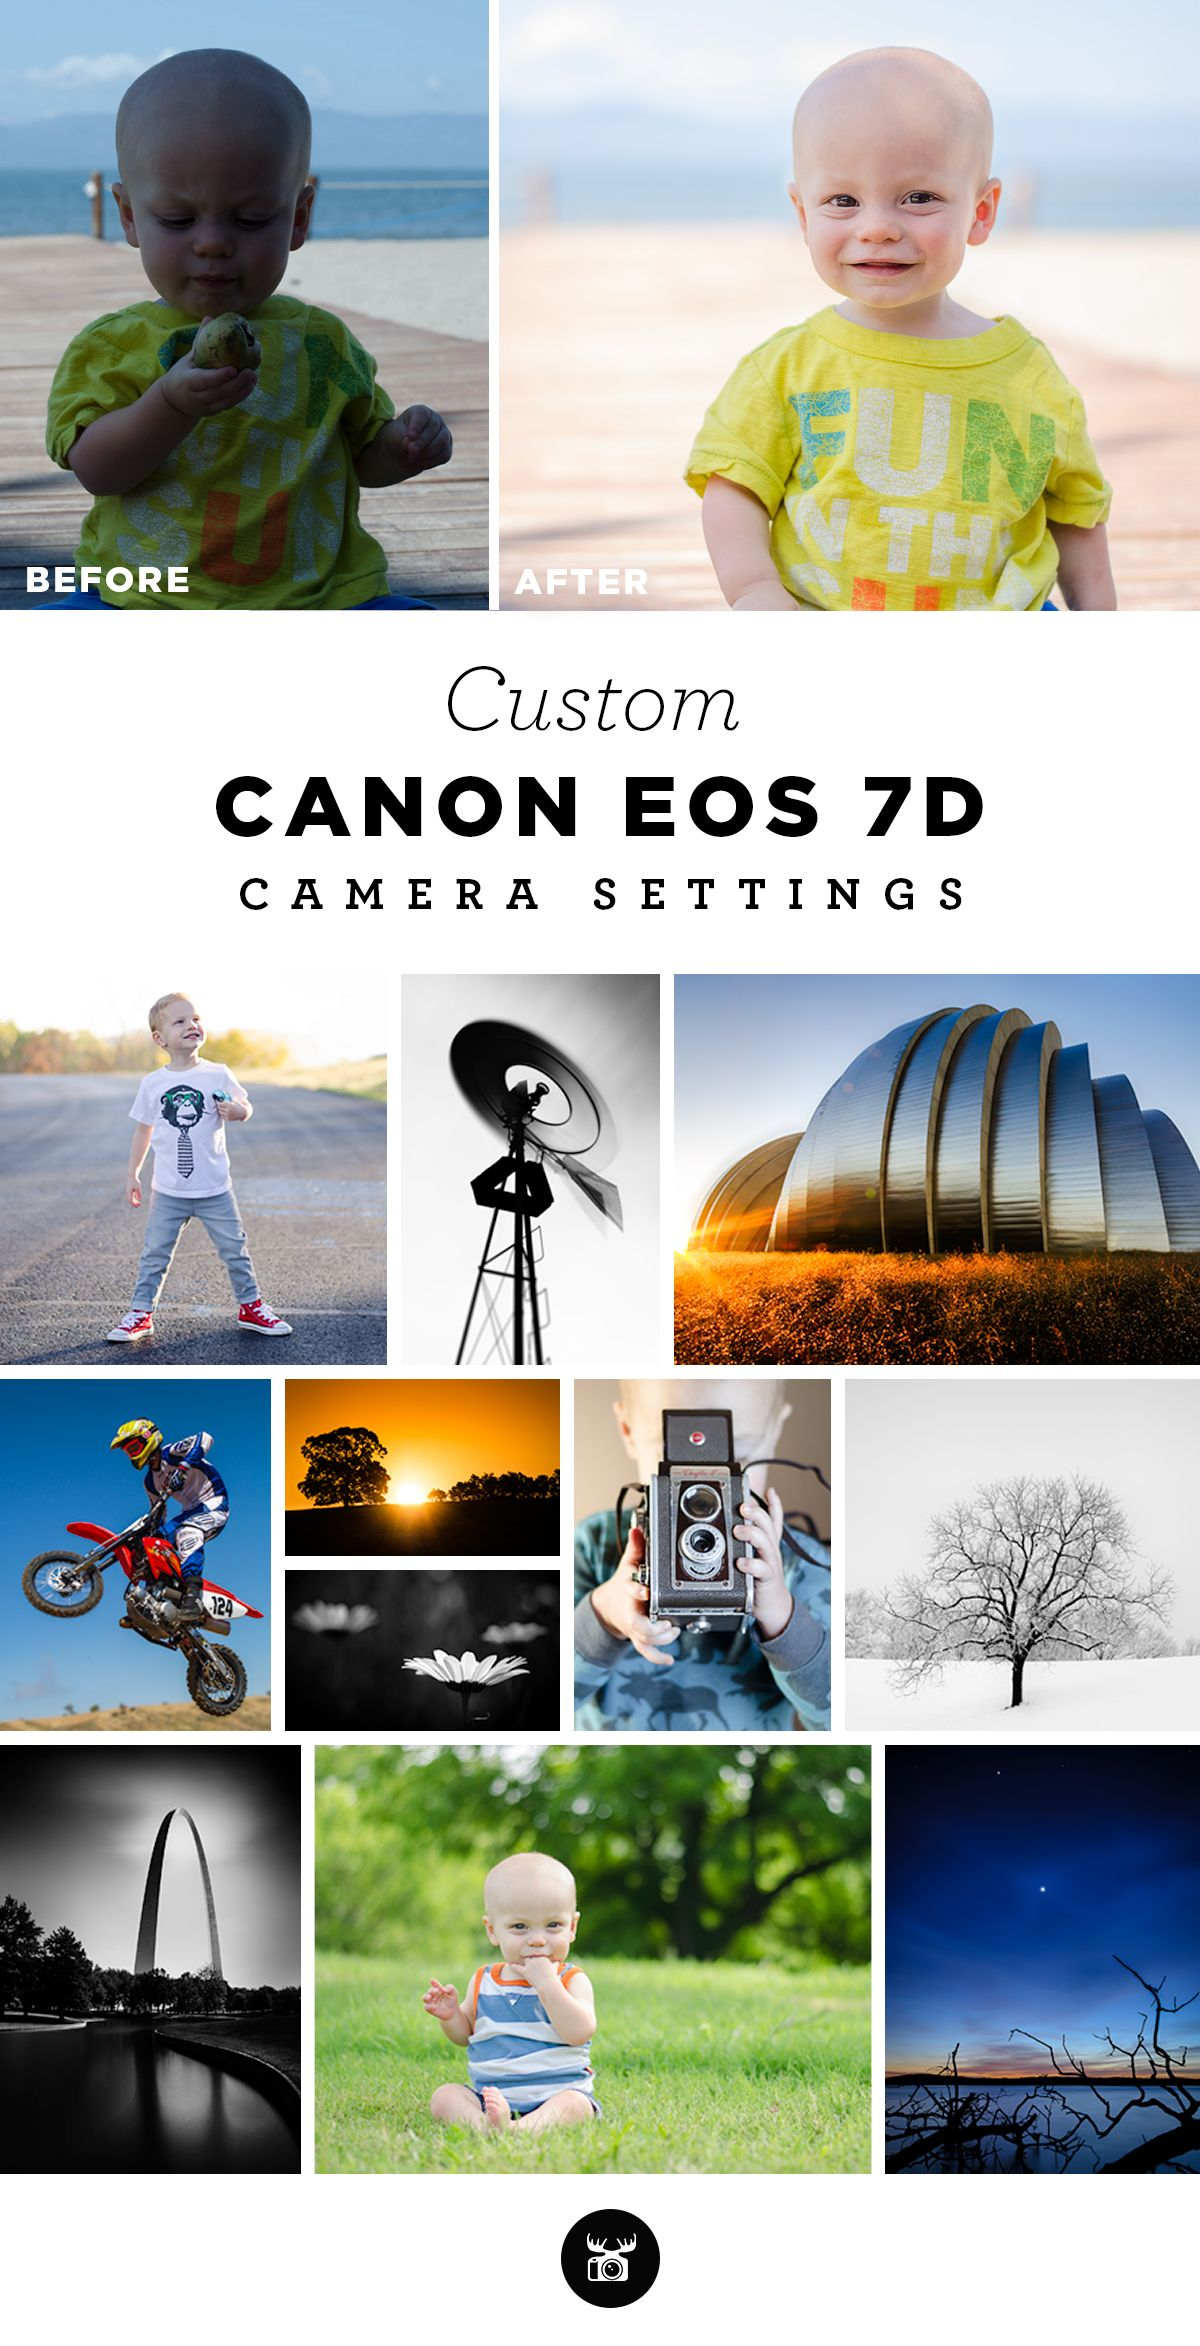 Custom camera settings for the Canon EOS 7D to help you take